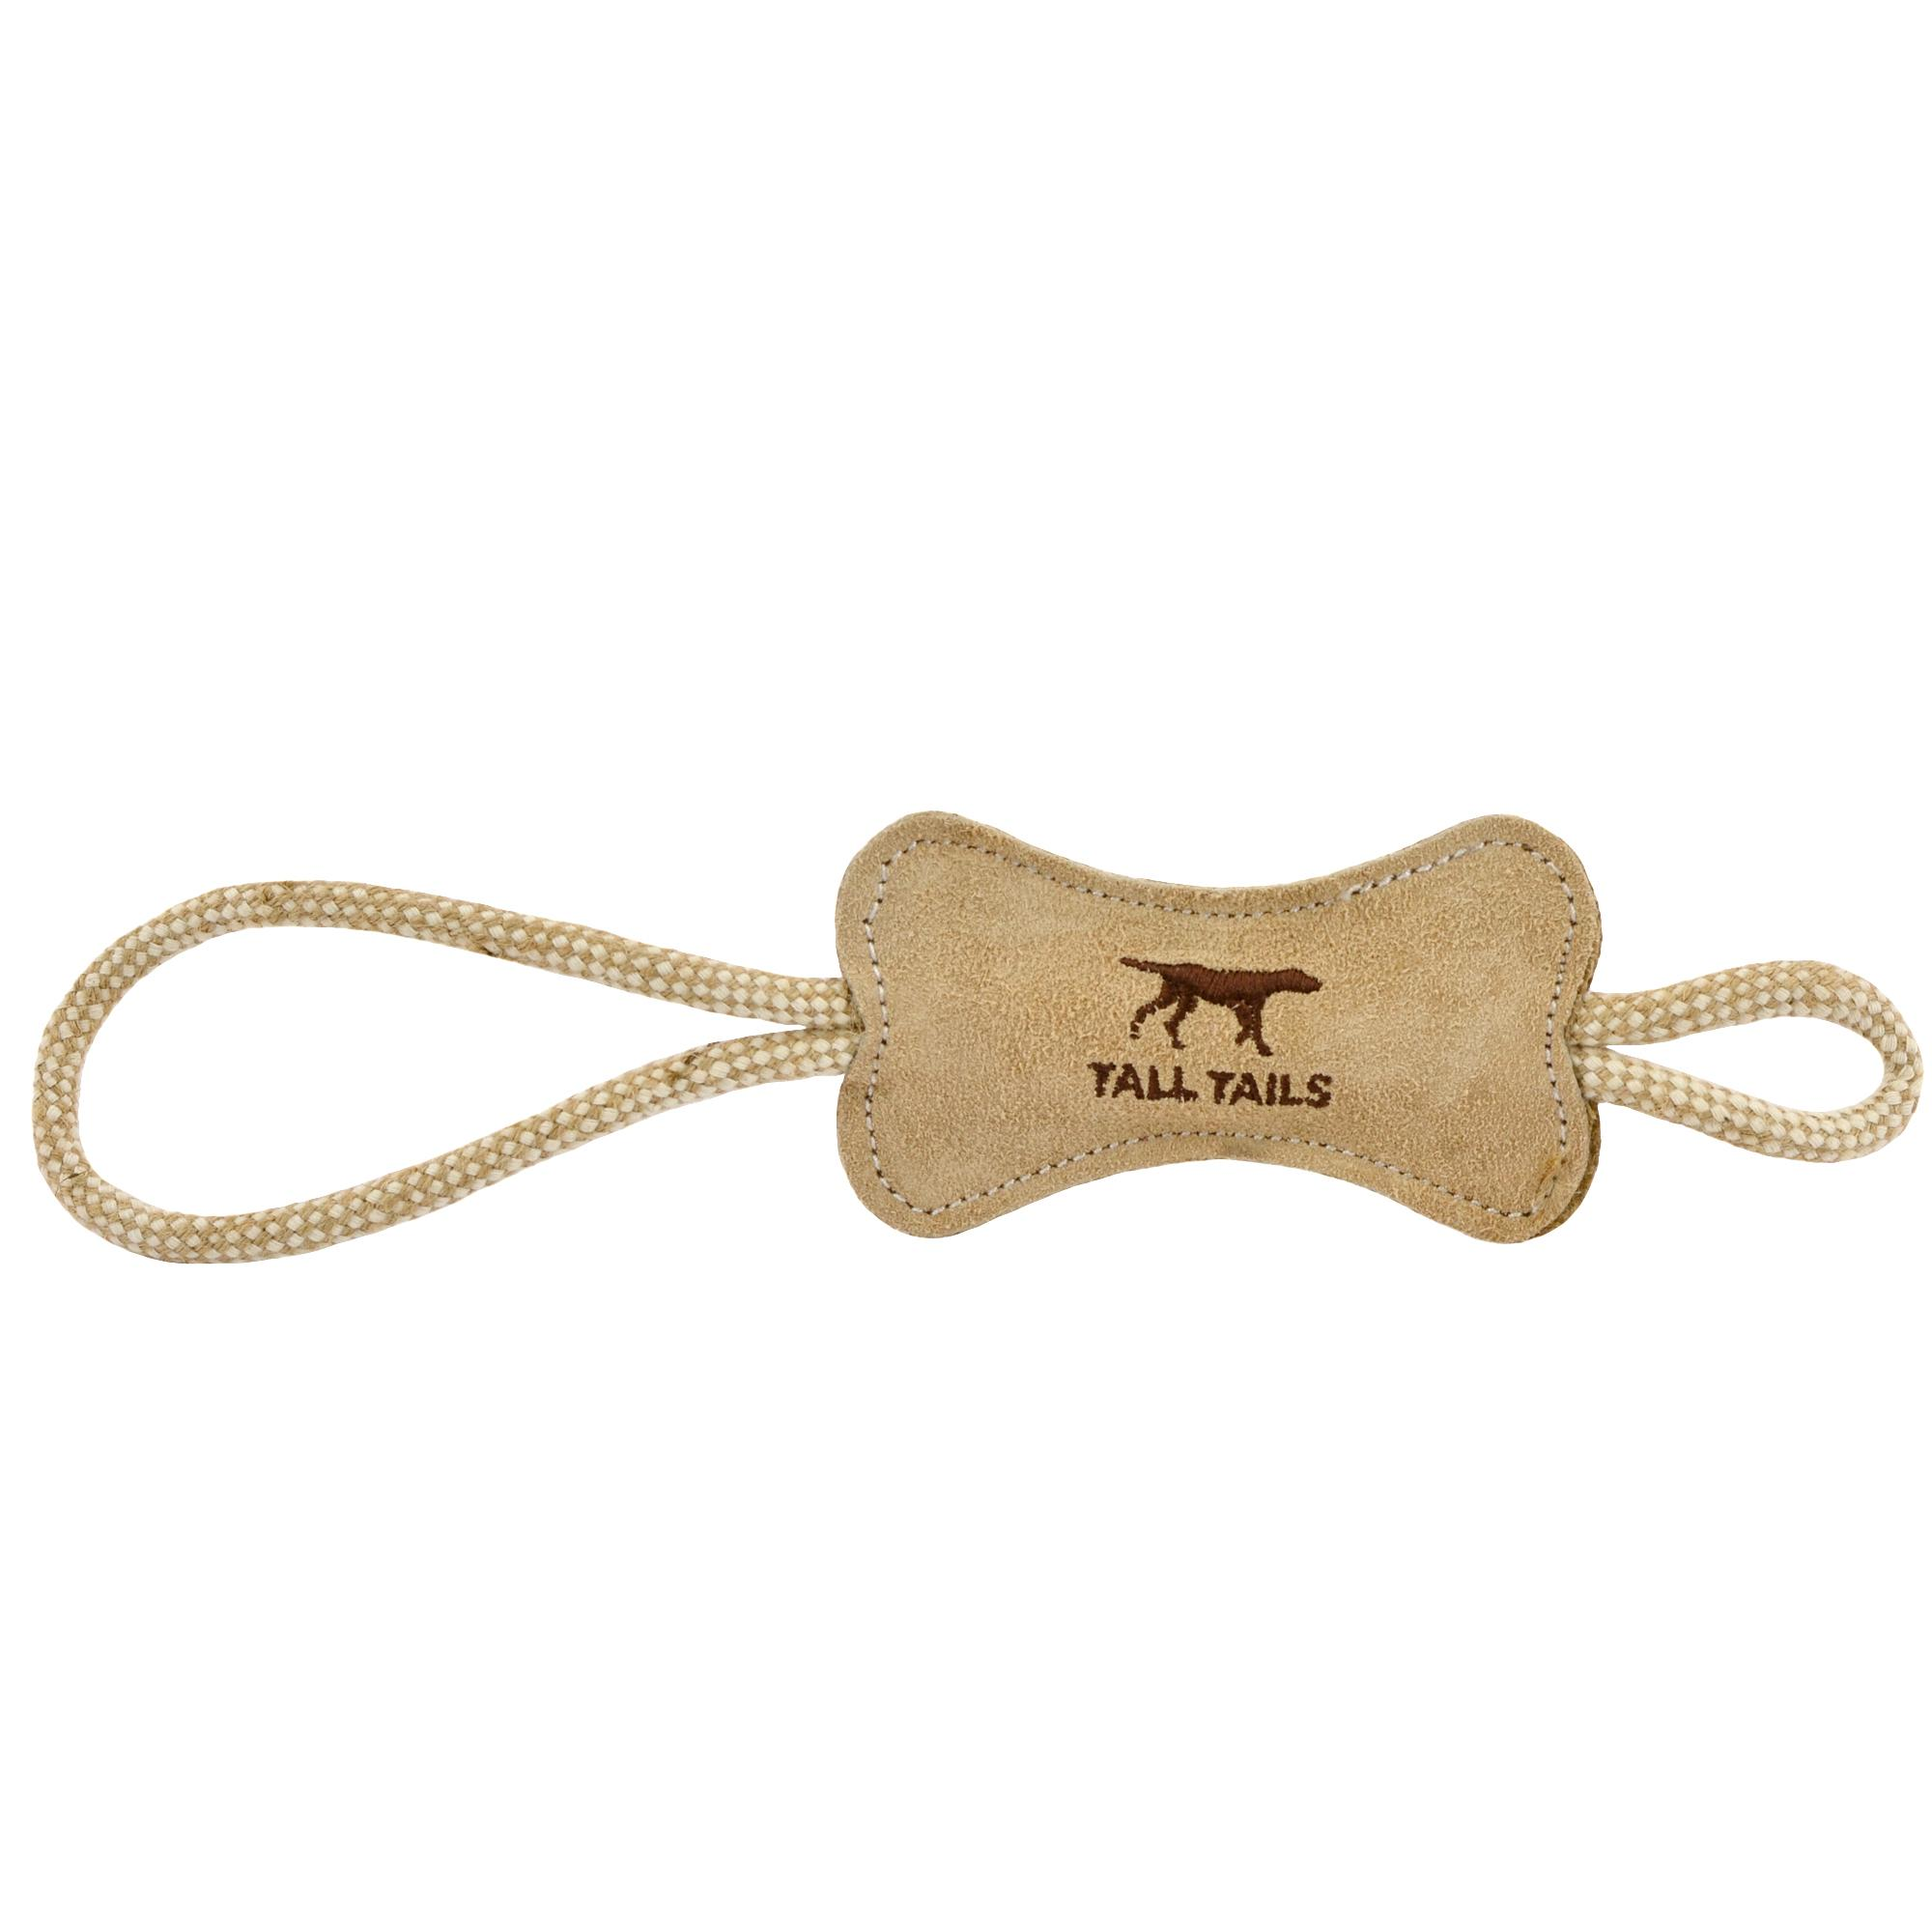 Tall Tails Natural Leather Bone Tug Dog Toy Image